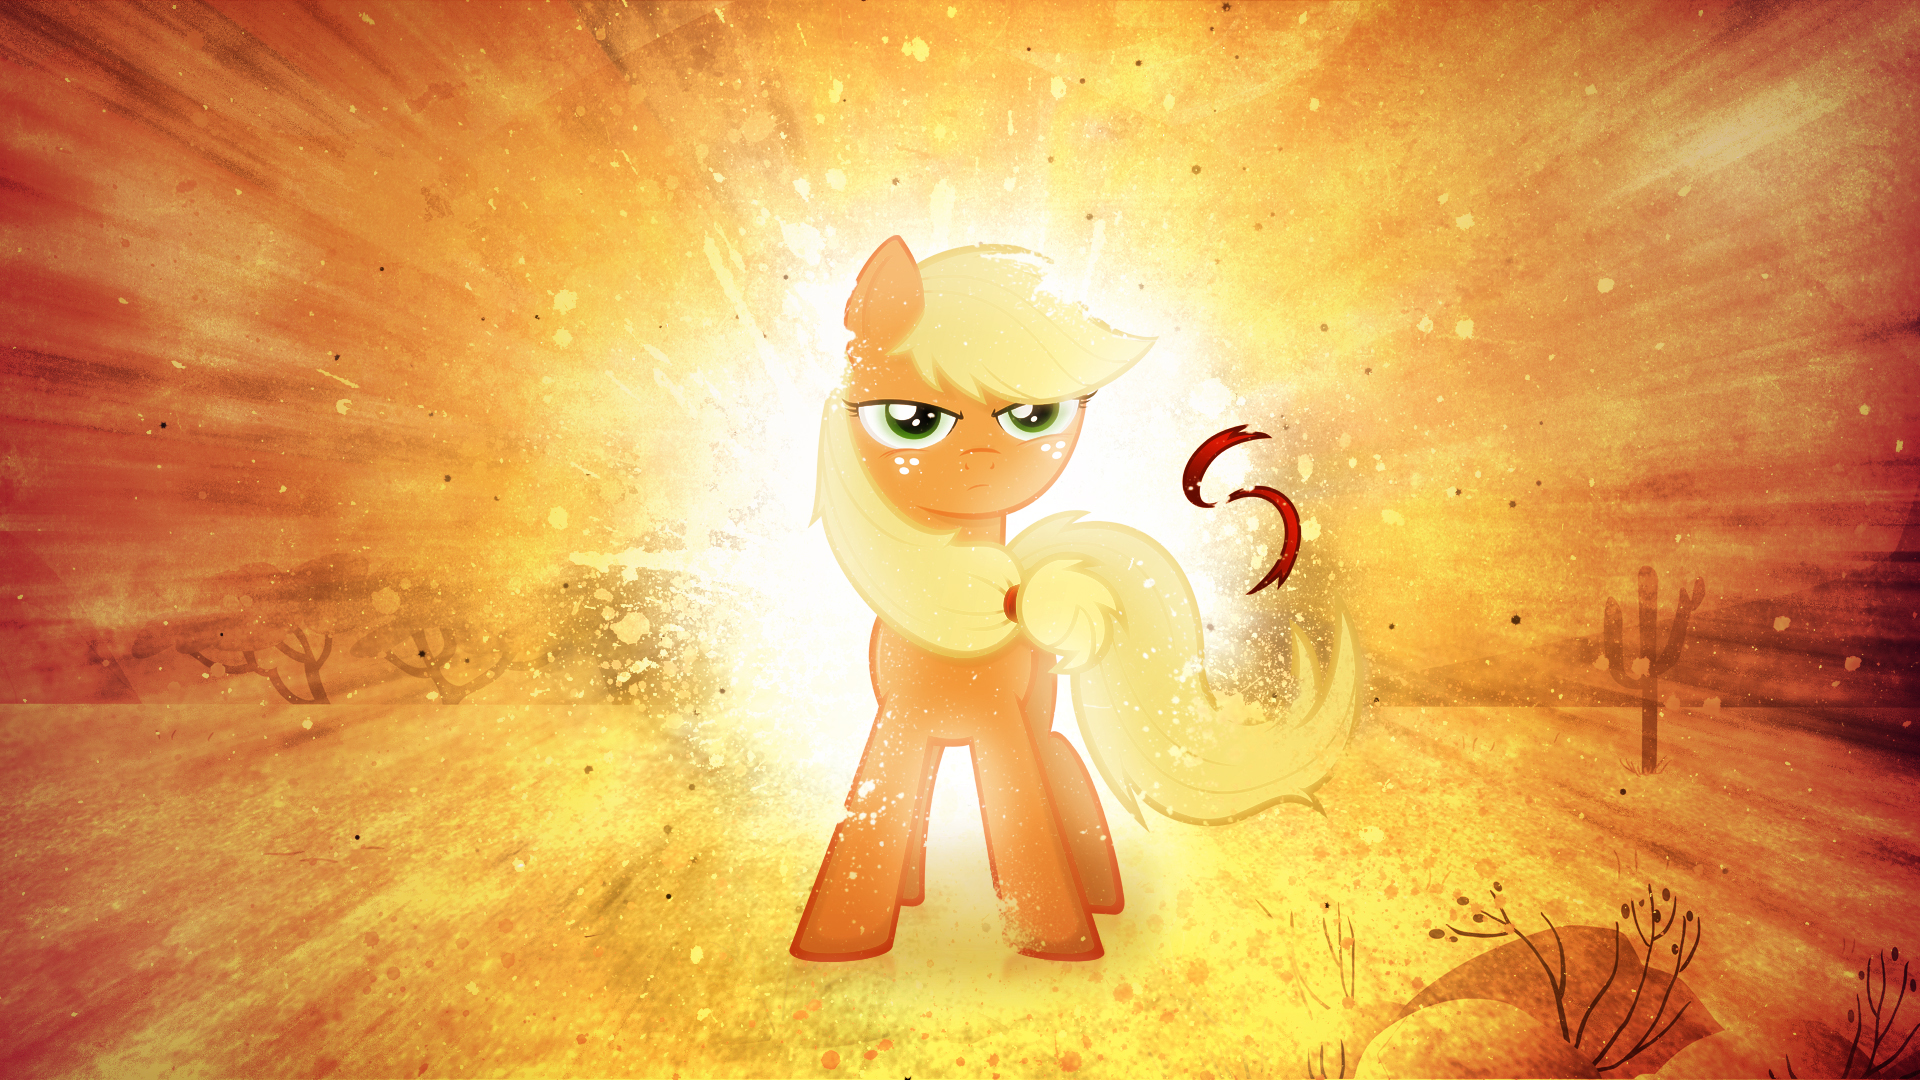 WOTW #4: Applejack - You can't beat me by romus91